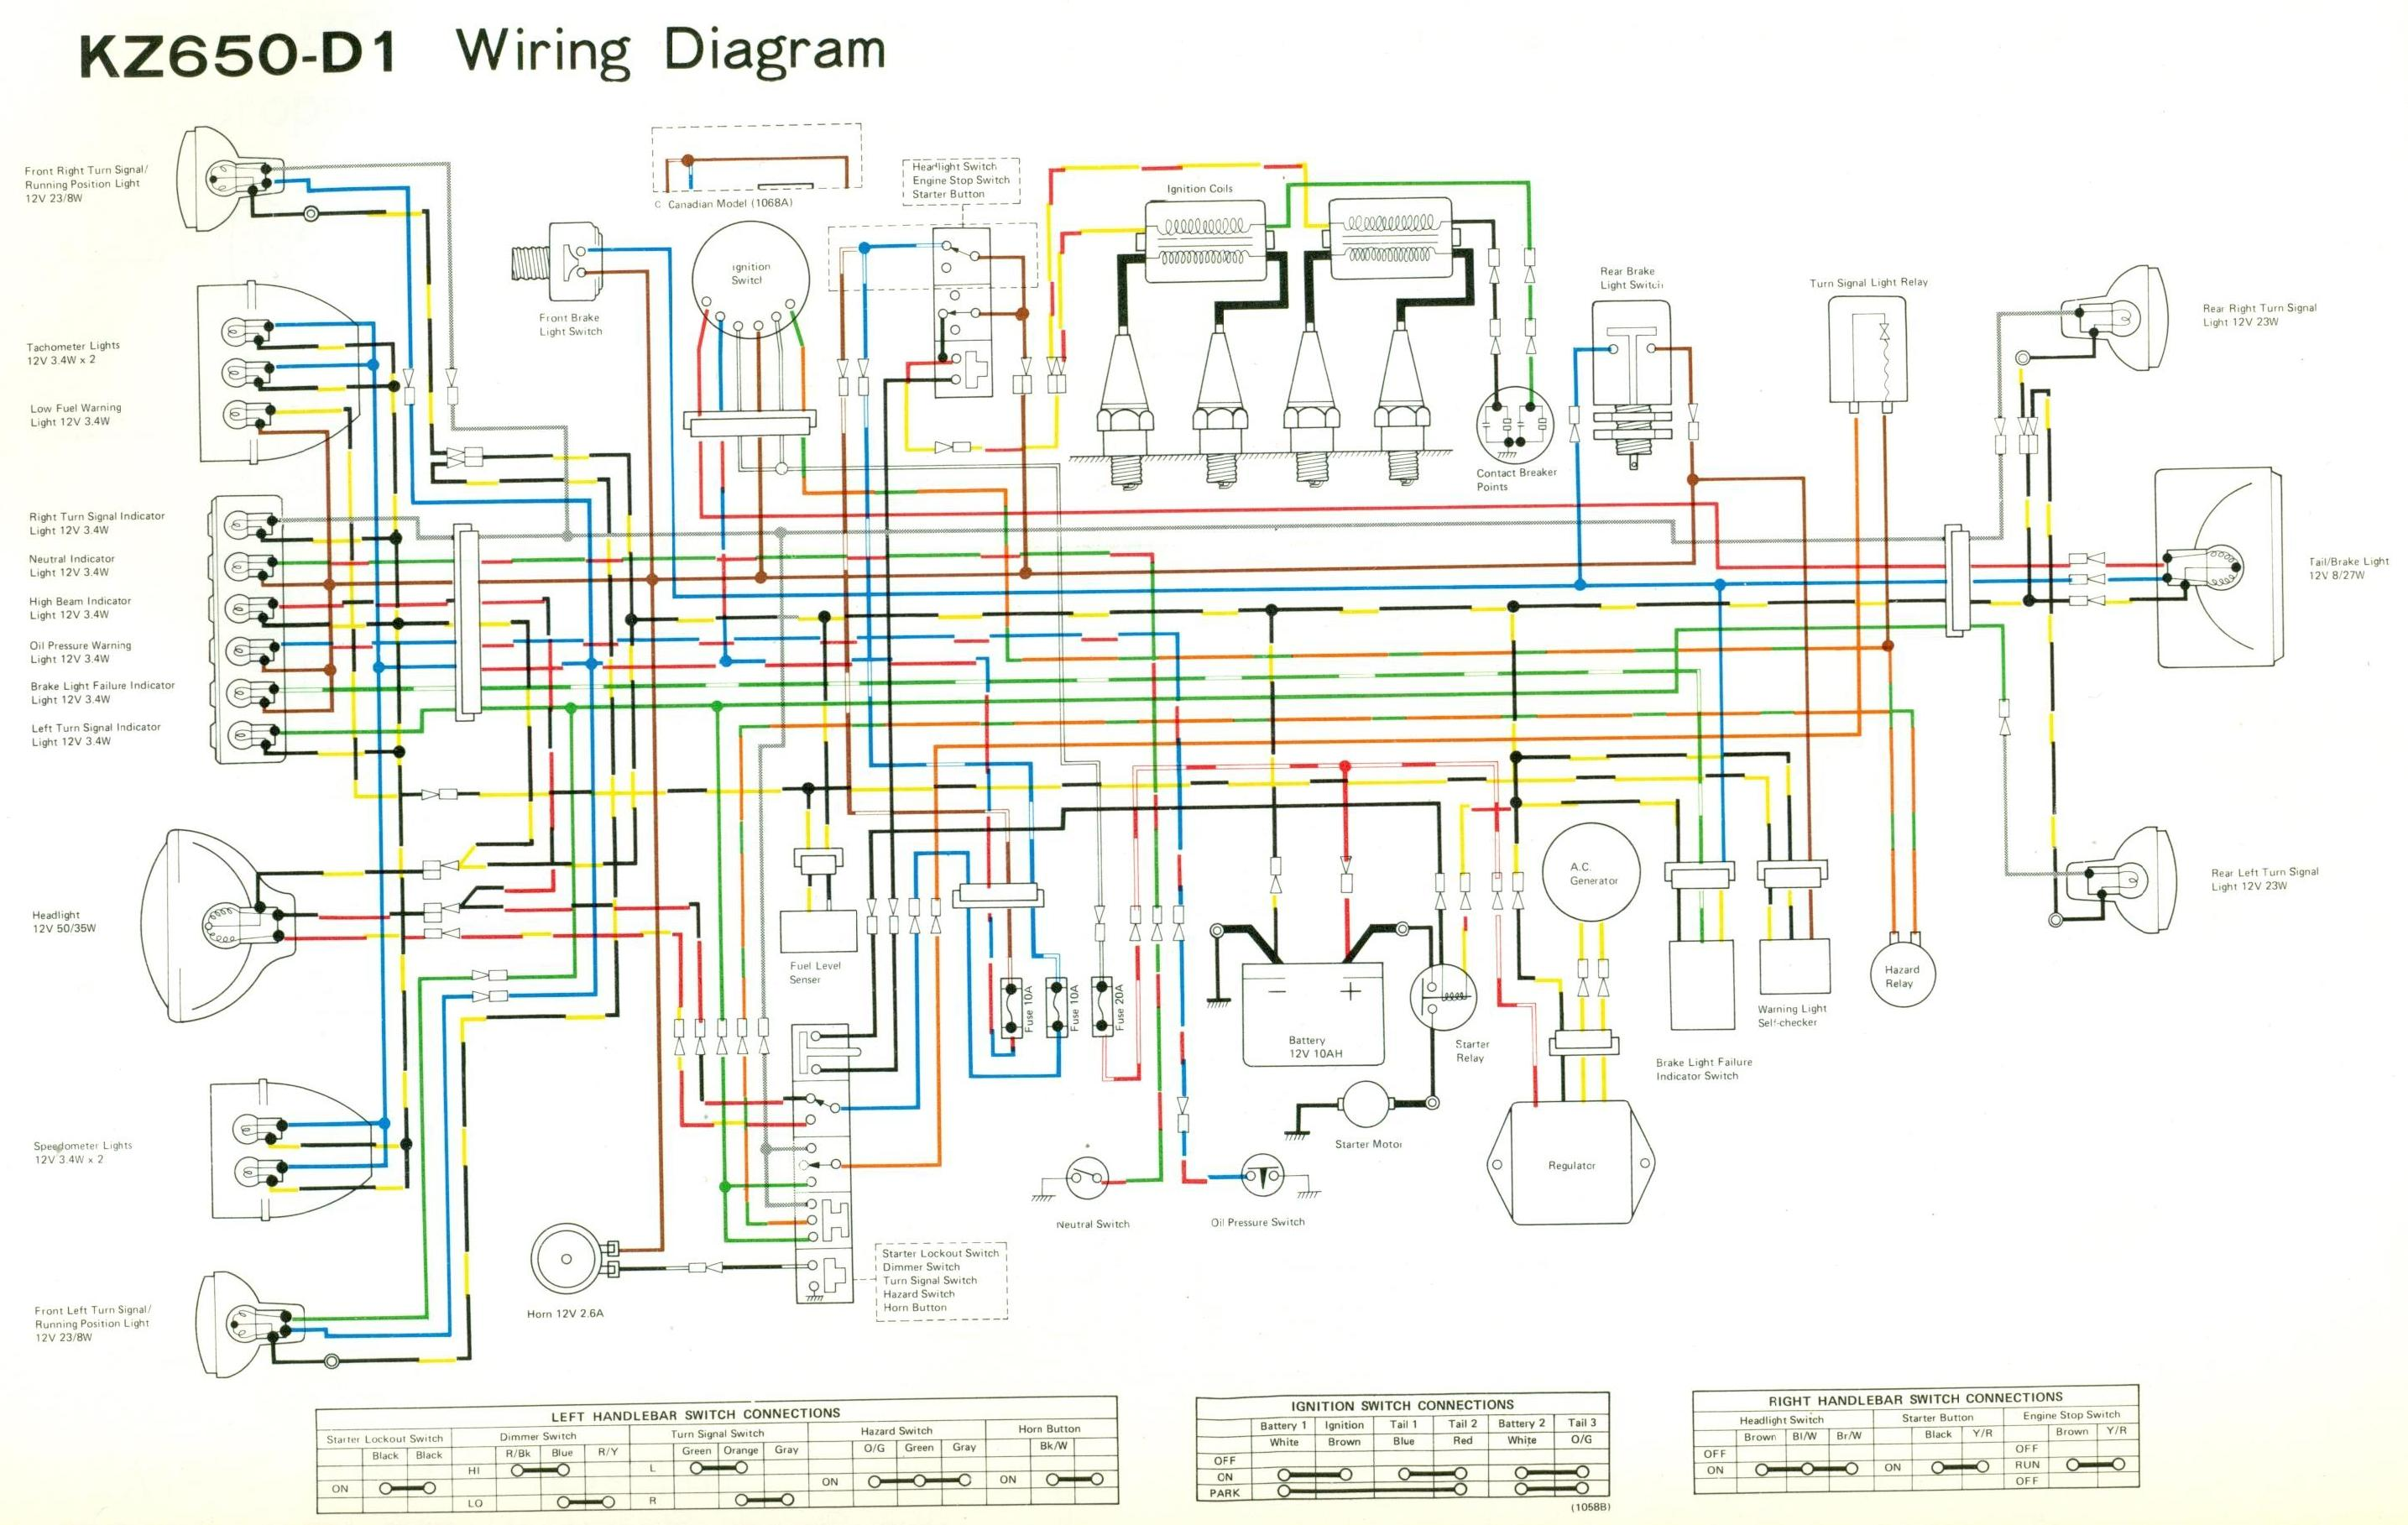 2003 Ducati St4s Wiring Diagram Schematics Wiring Diagrams Source · wiring  diagrams rh oregonmotorcycleparts com 2008 Kawasaki Ninja Wiring Diagrams  ...